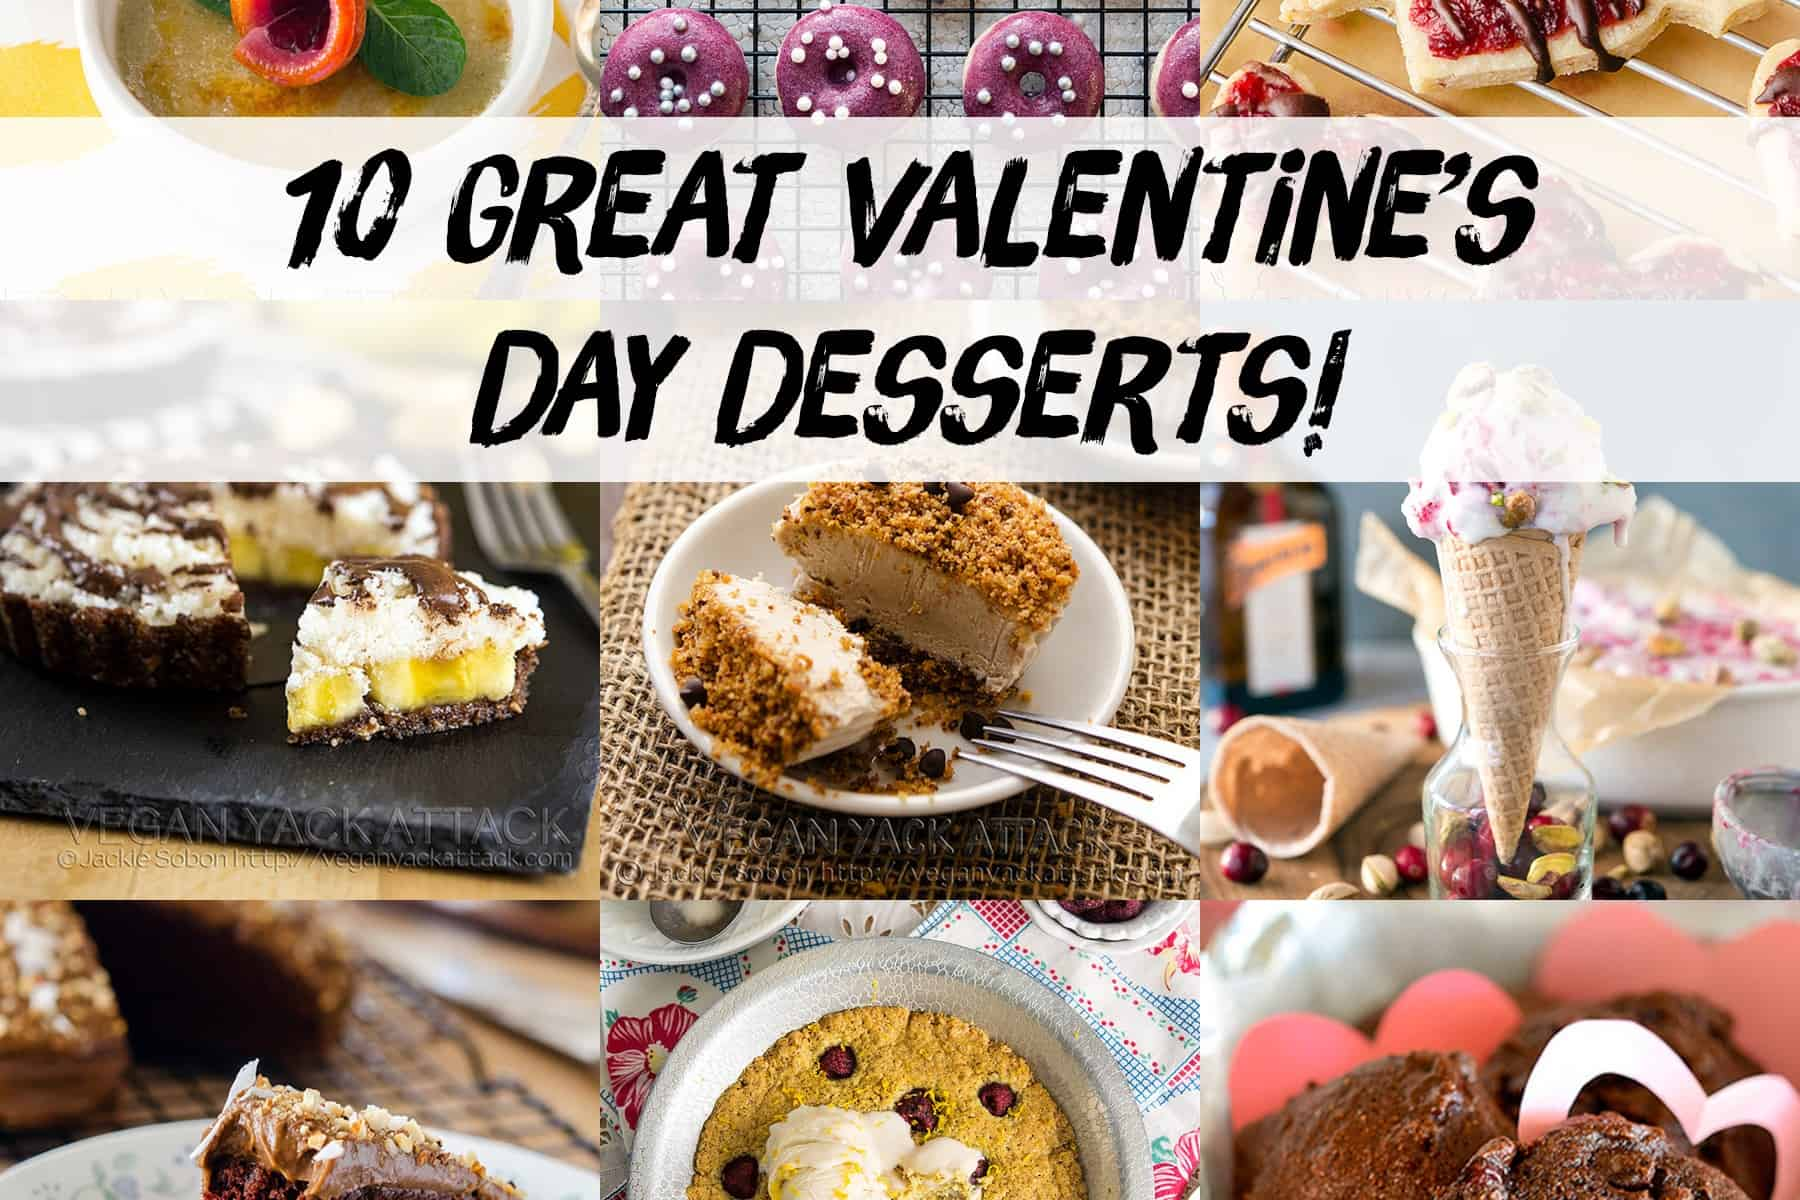 10 Great Valentine's Day Desserts